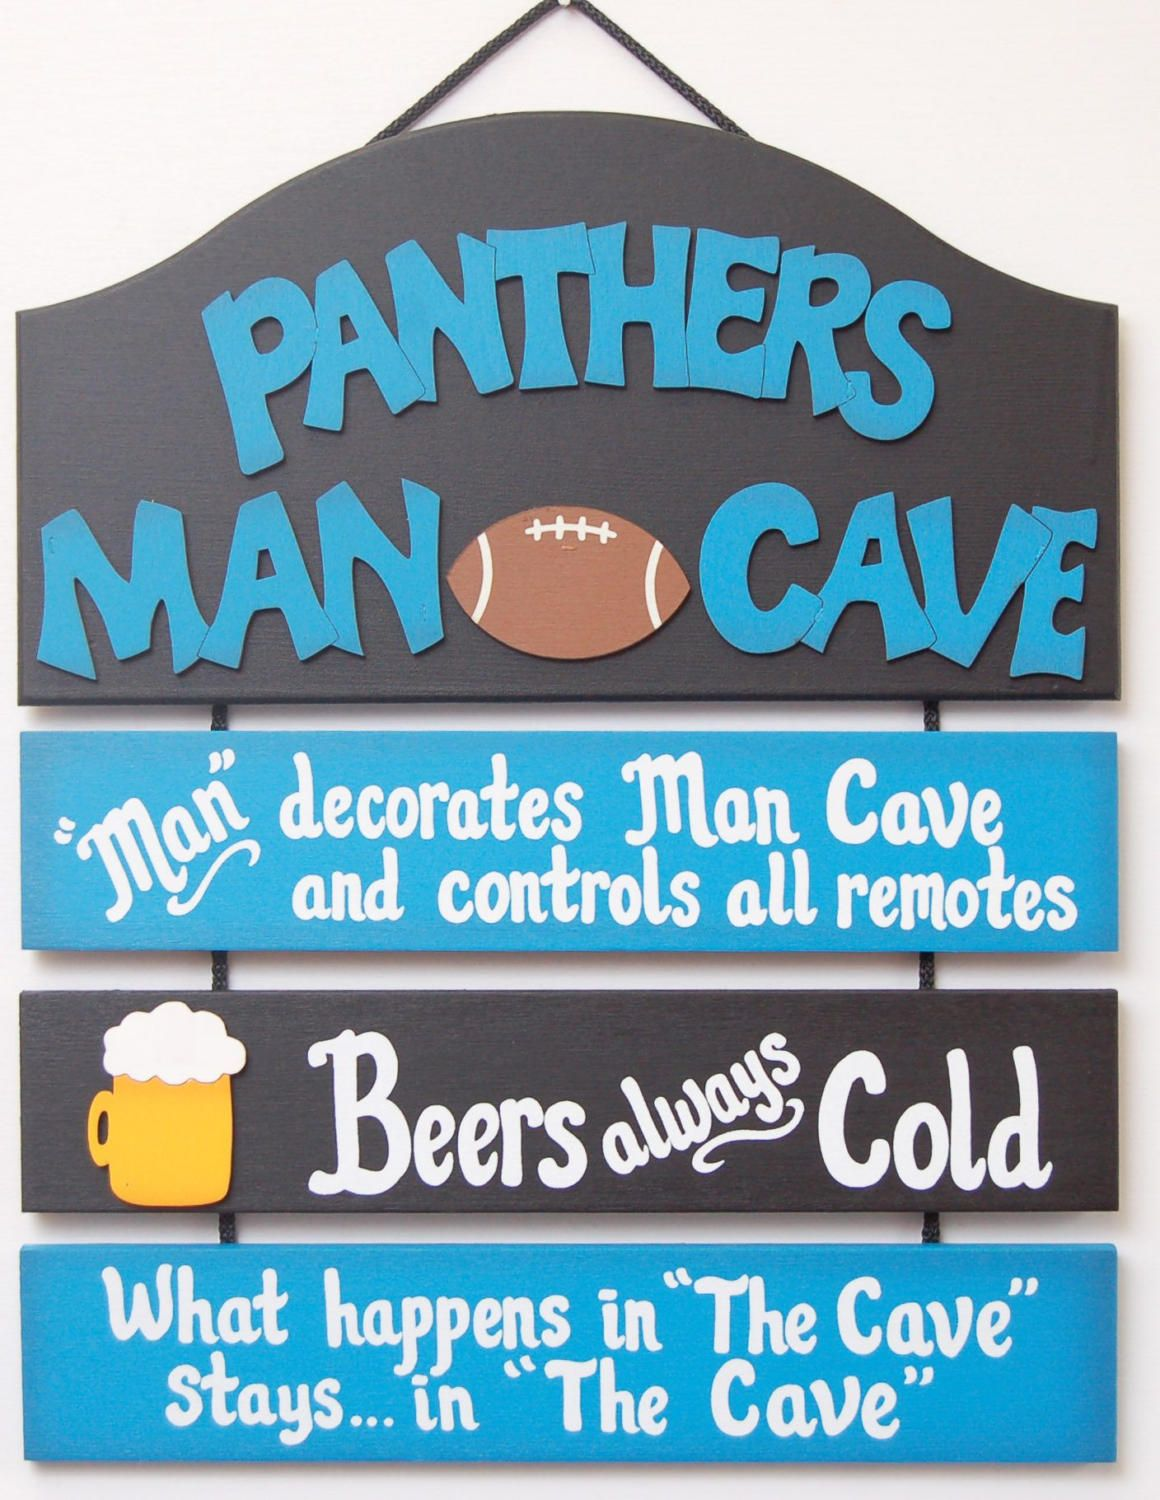 b69b854de South Carolina Panthers NFL Football wooden sports sign Panthers Football man  cave sports sign wooden yard sports sign gifts for guys by UCsportsbyBill  on ...